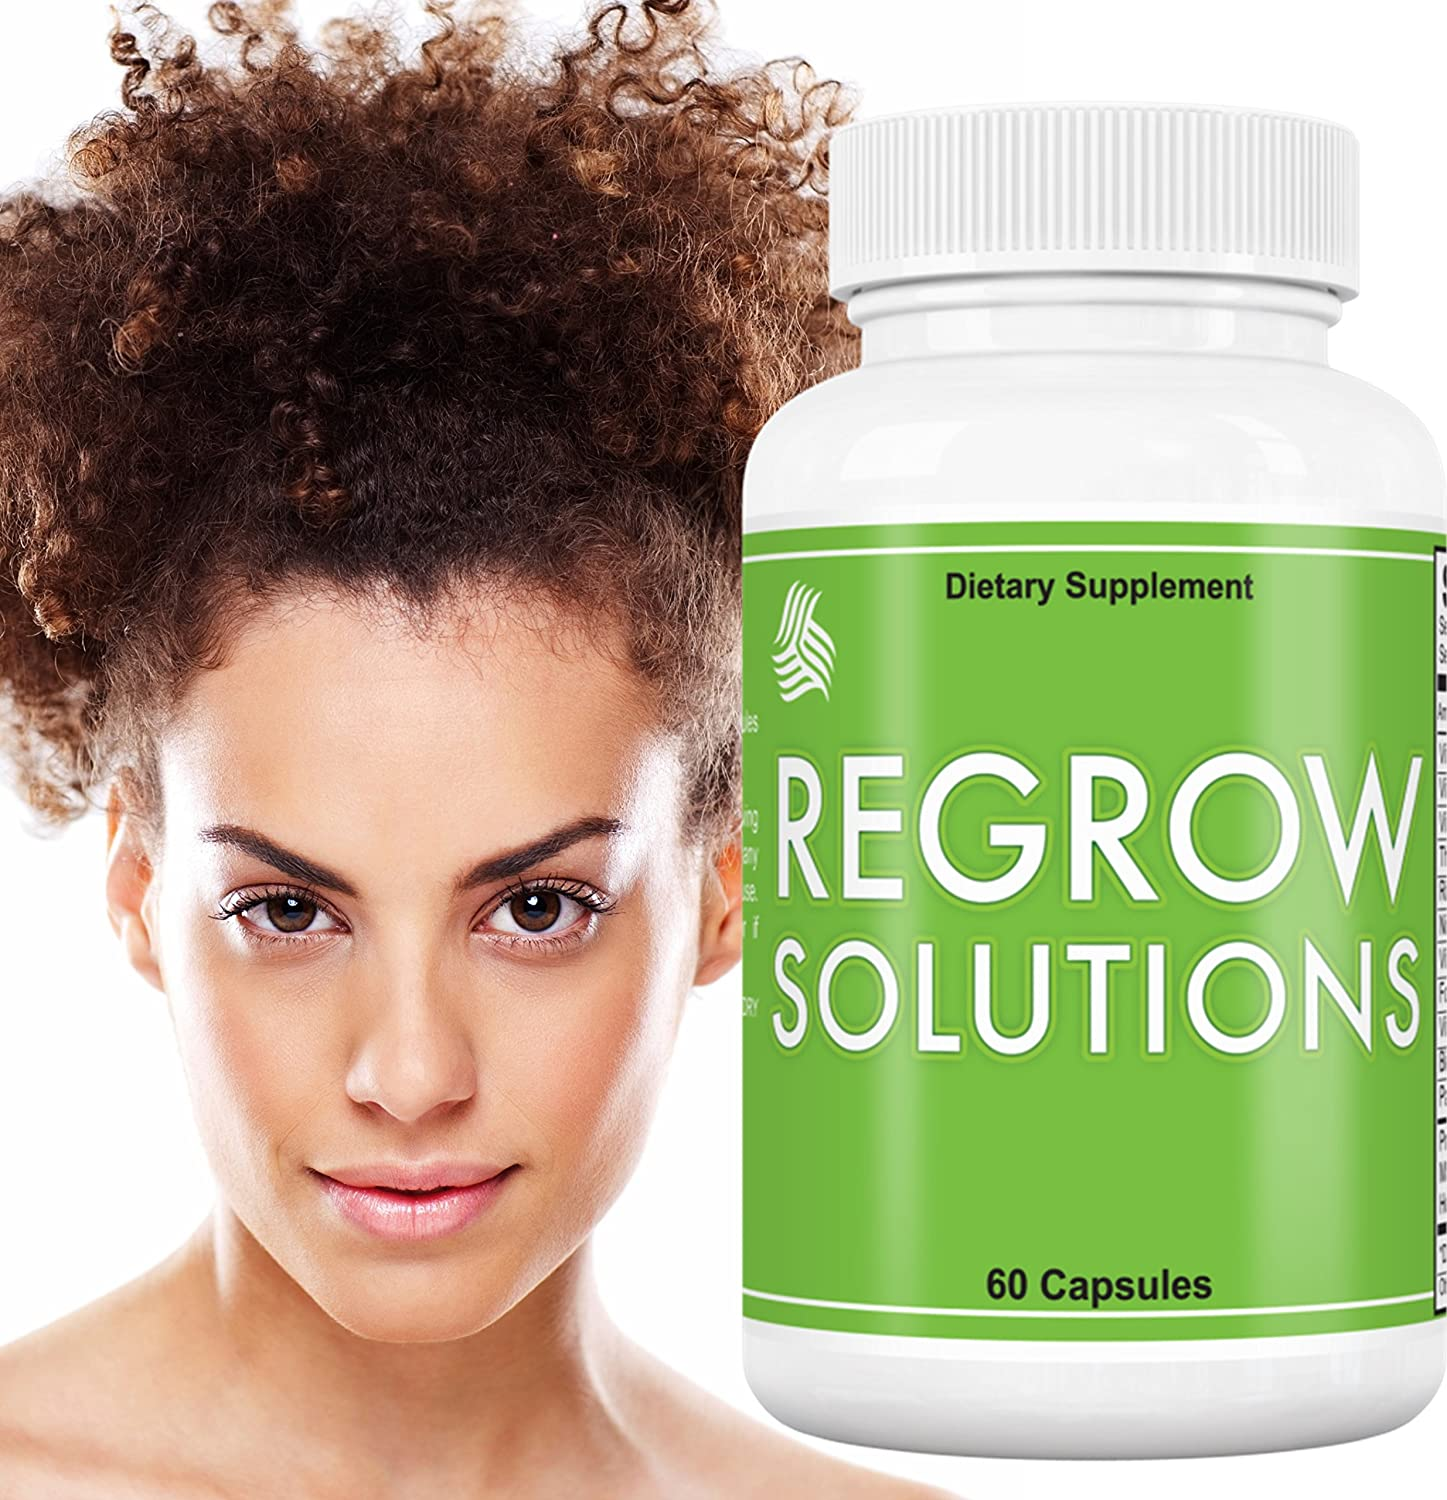 African American Hair Growth Vitamins: Regrow Solutions - Biotin for Hair Growth - Biotin 5000 mcg plus 11 Essential Vitamins for Hair Growth - 100% Money Back Guarantee